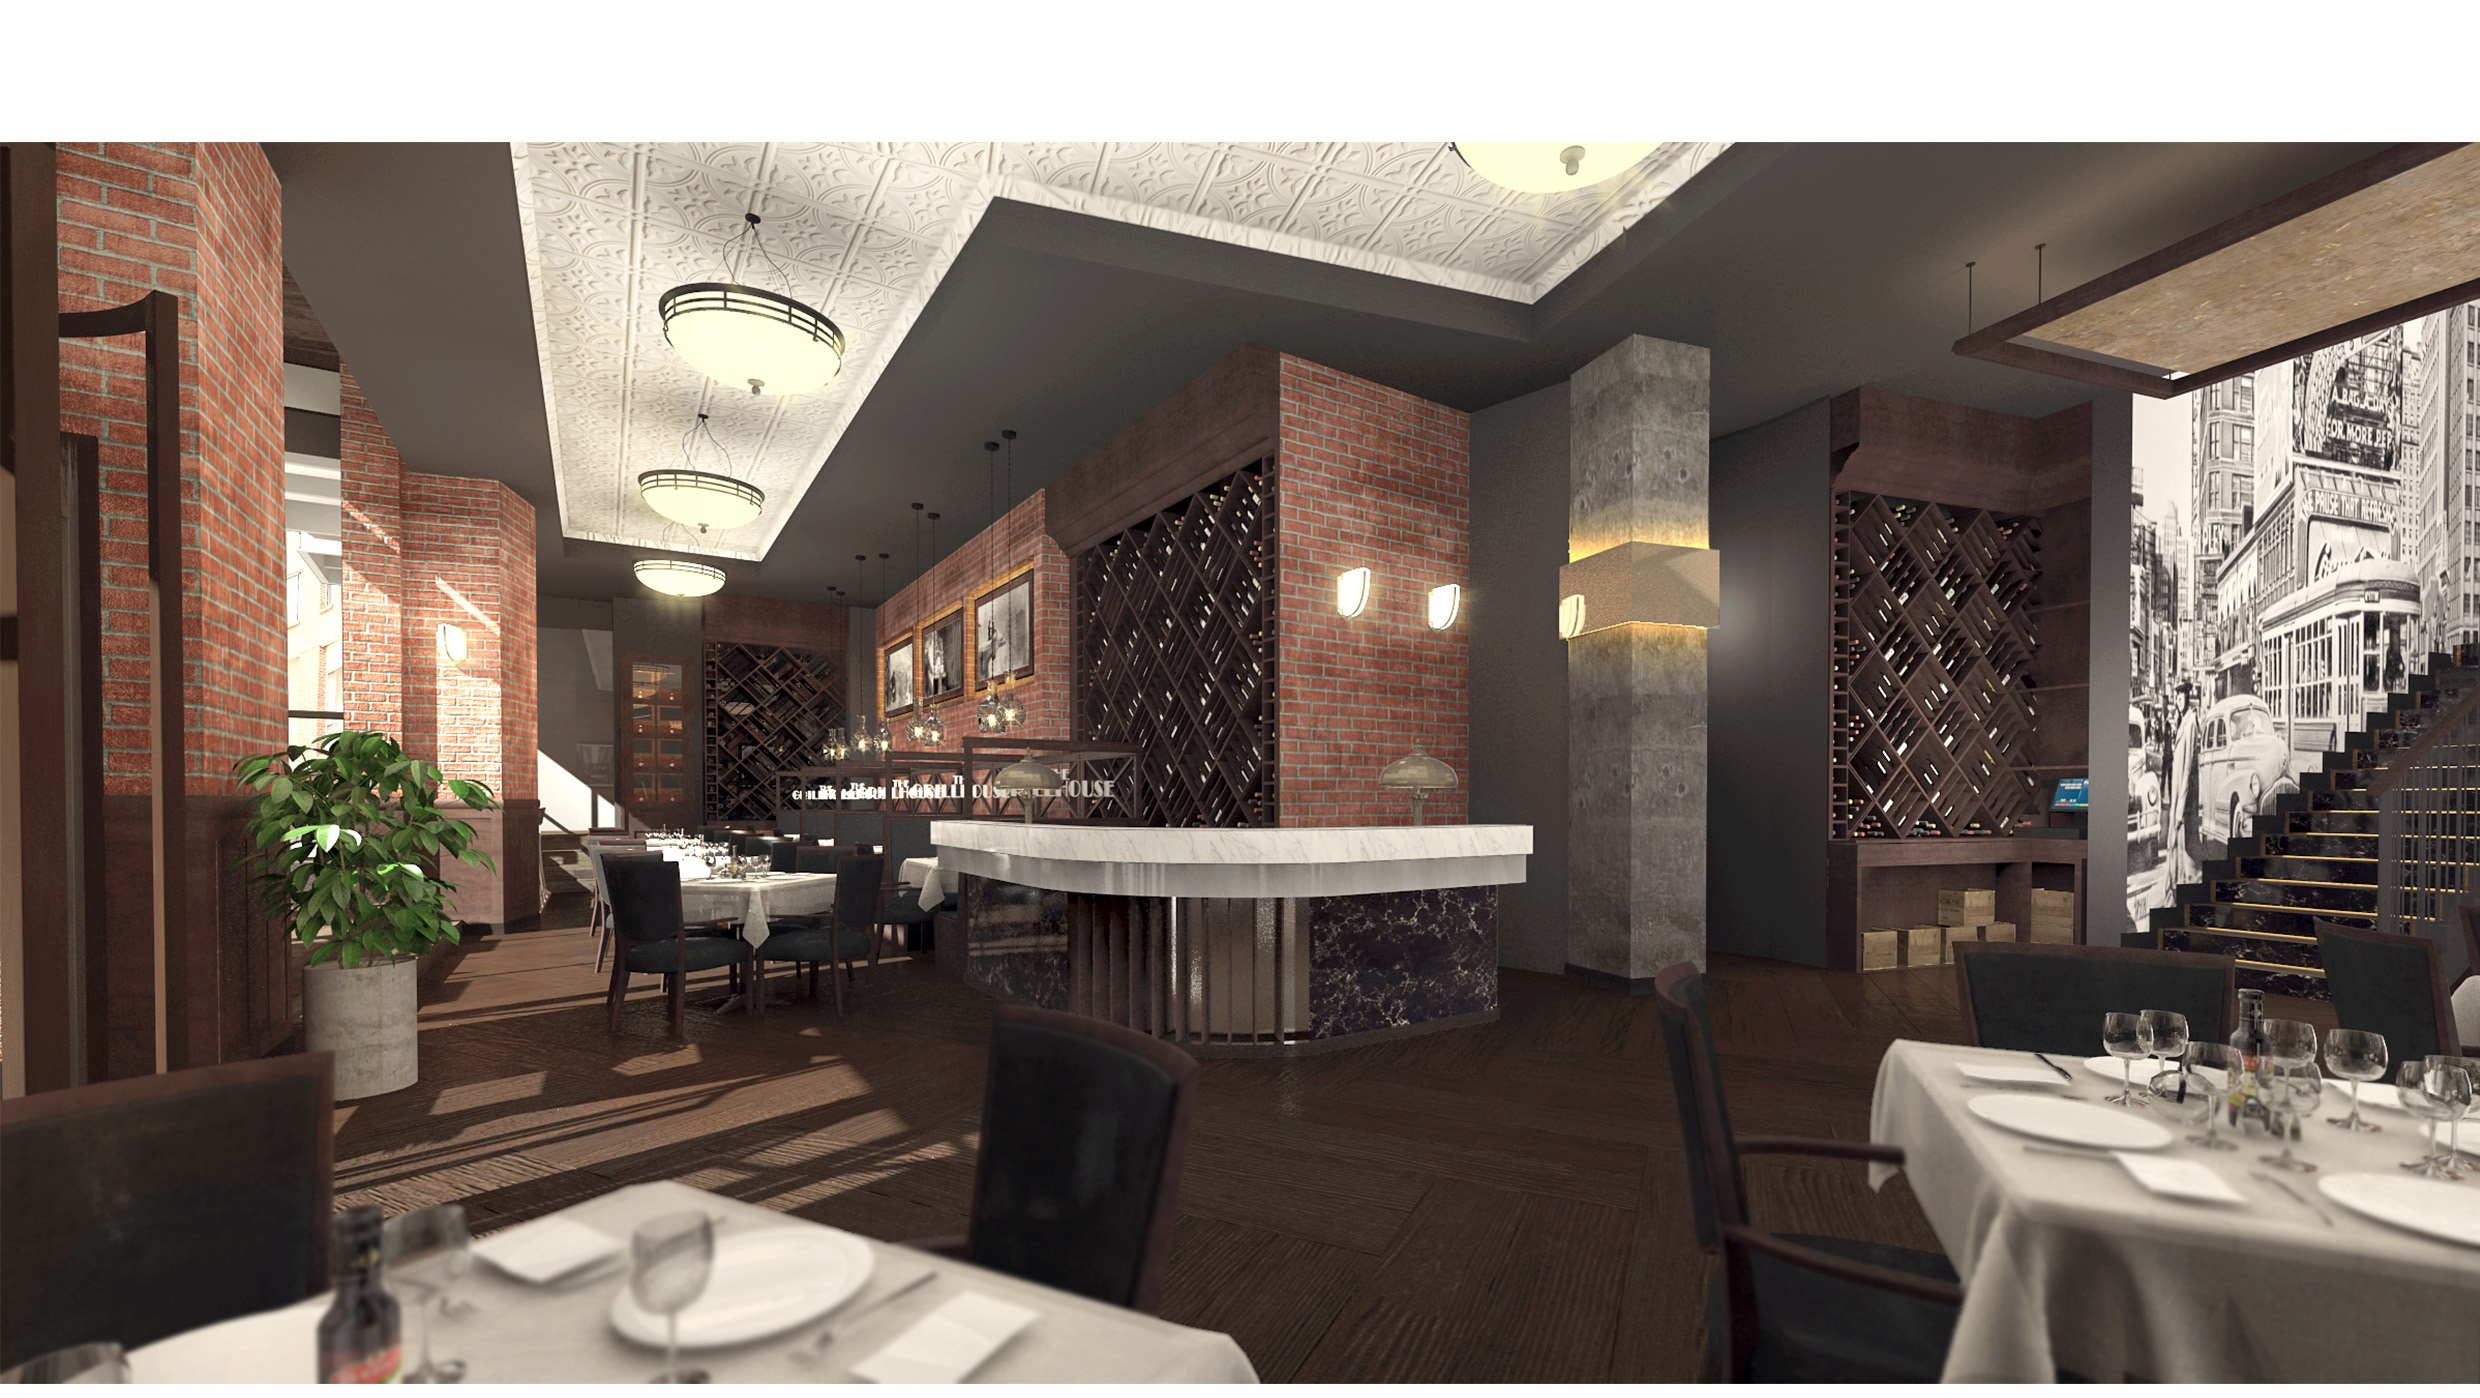 Melrose Arch The Grillhouse artist's impression2